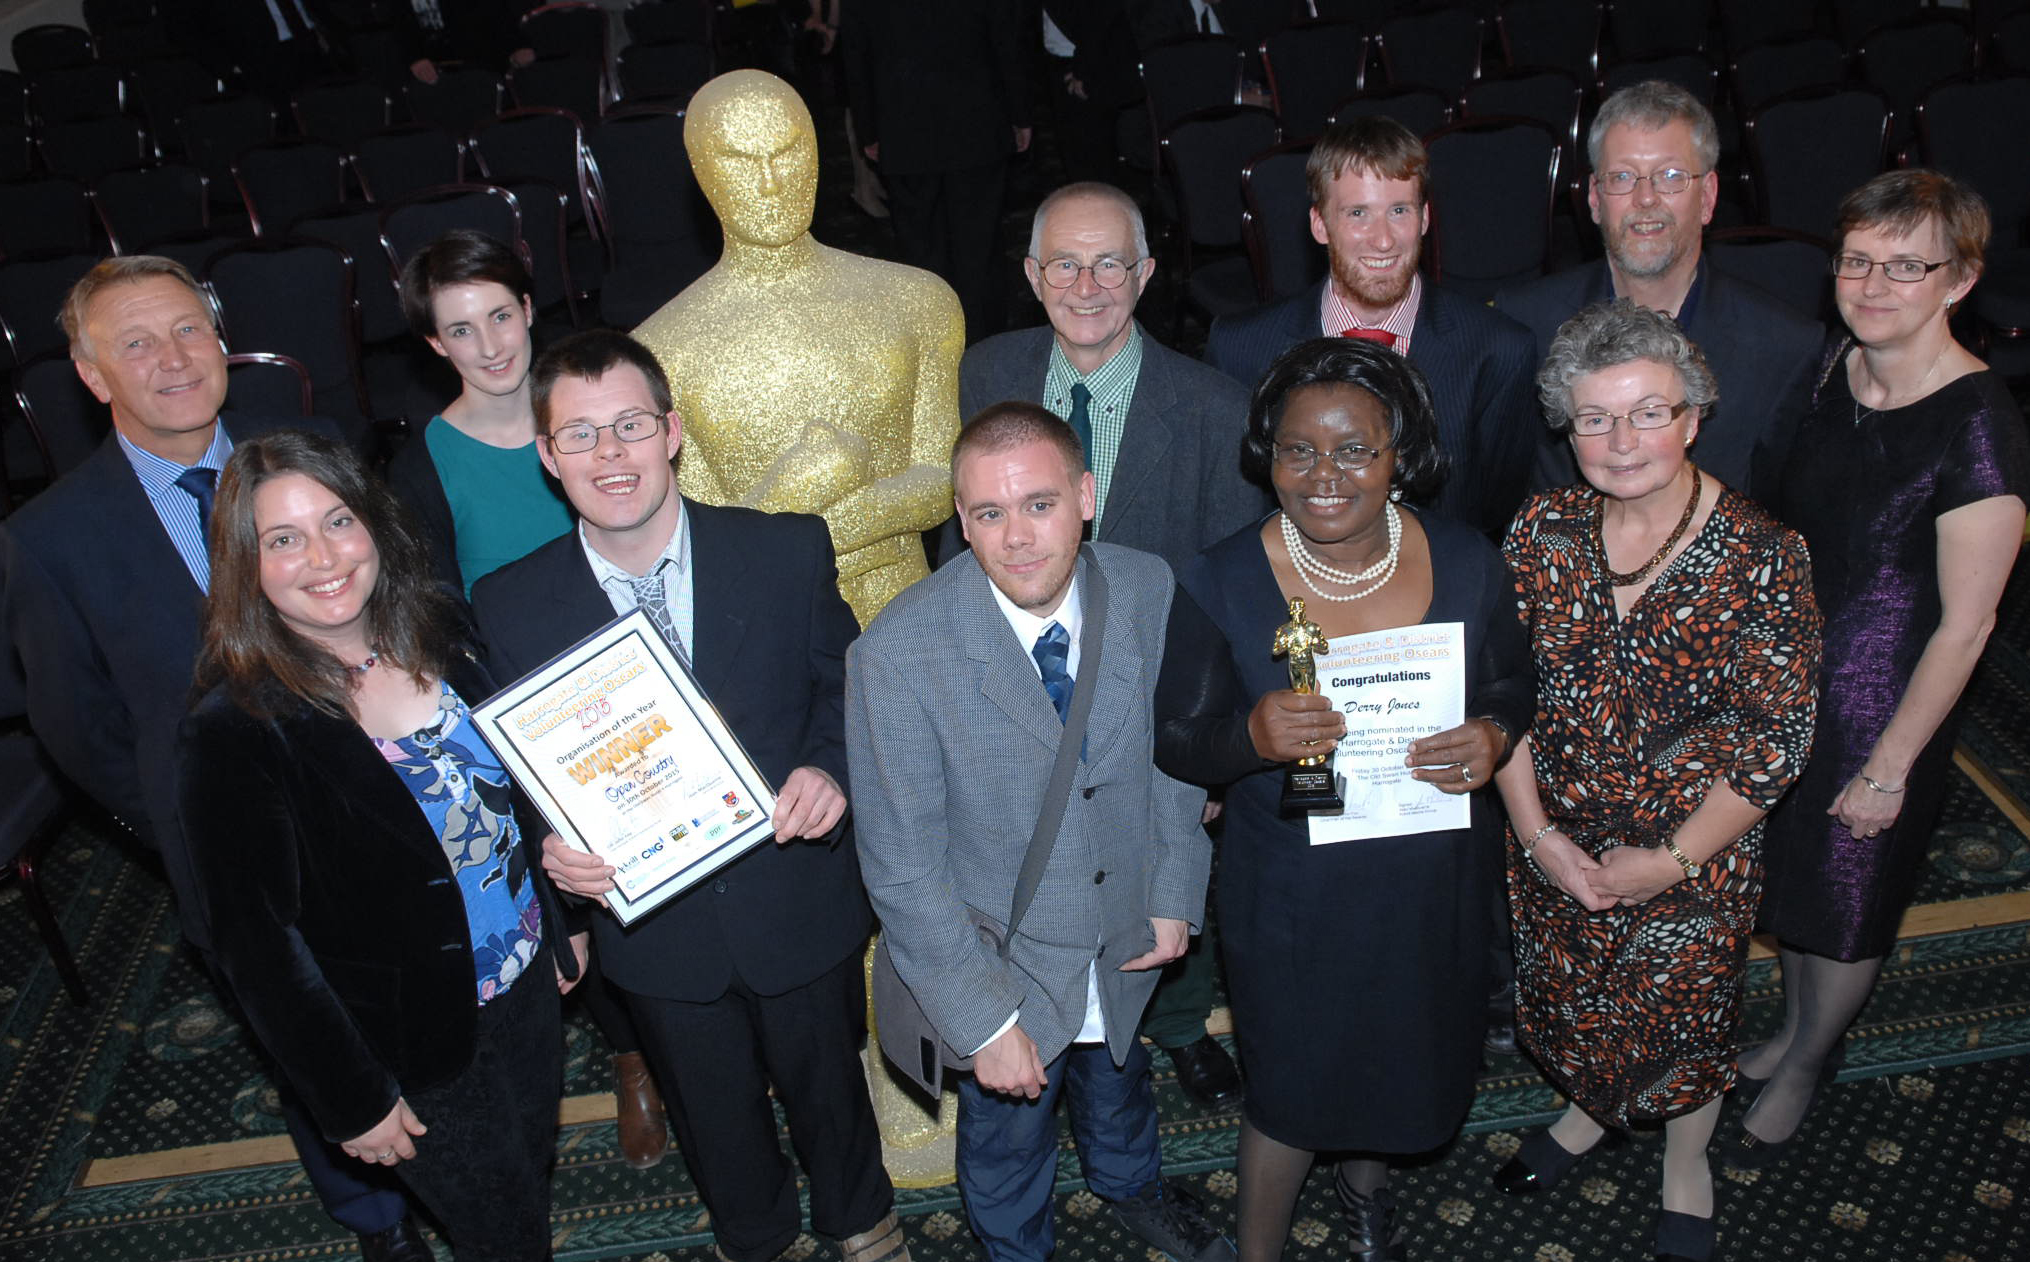 A group of people smartly dressed holding certificates and awards.